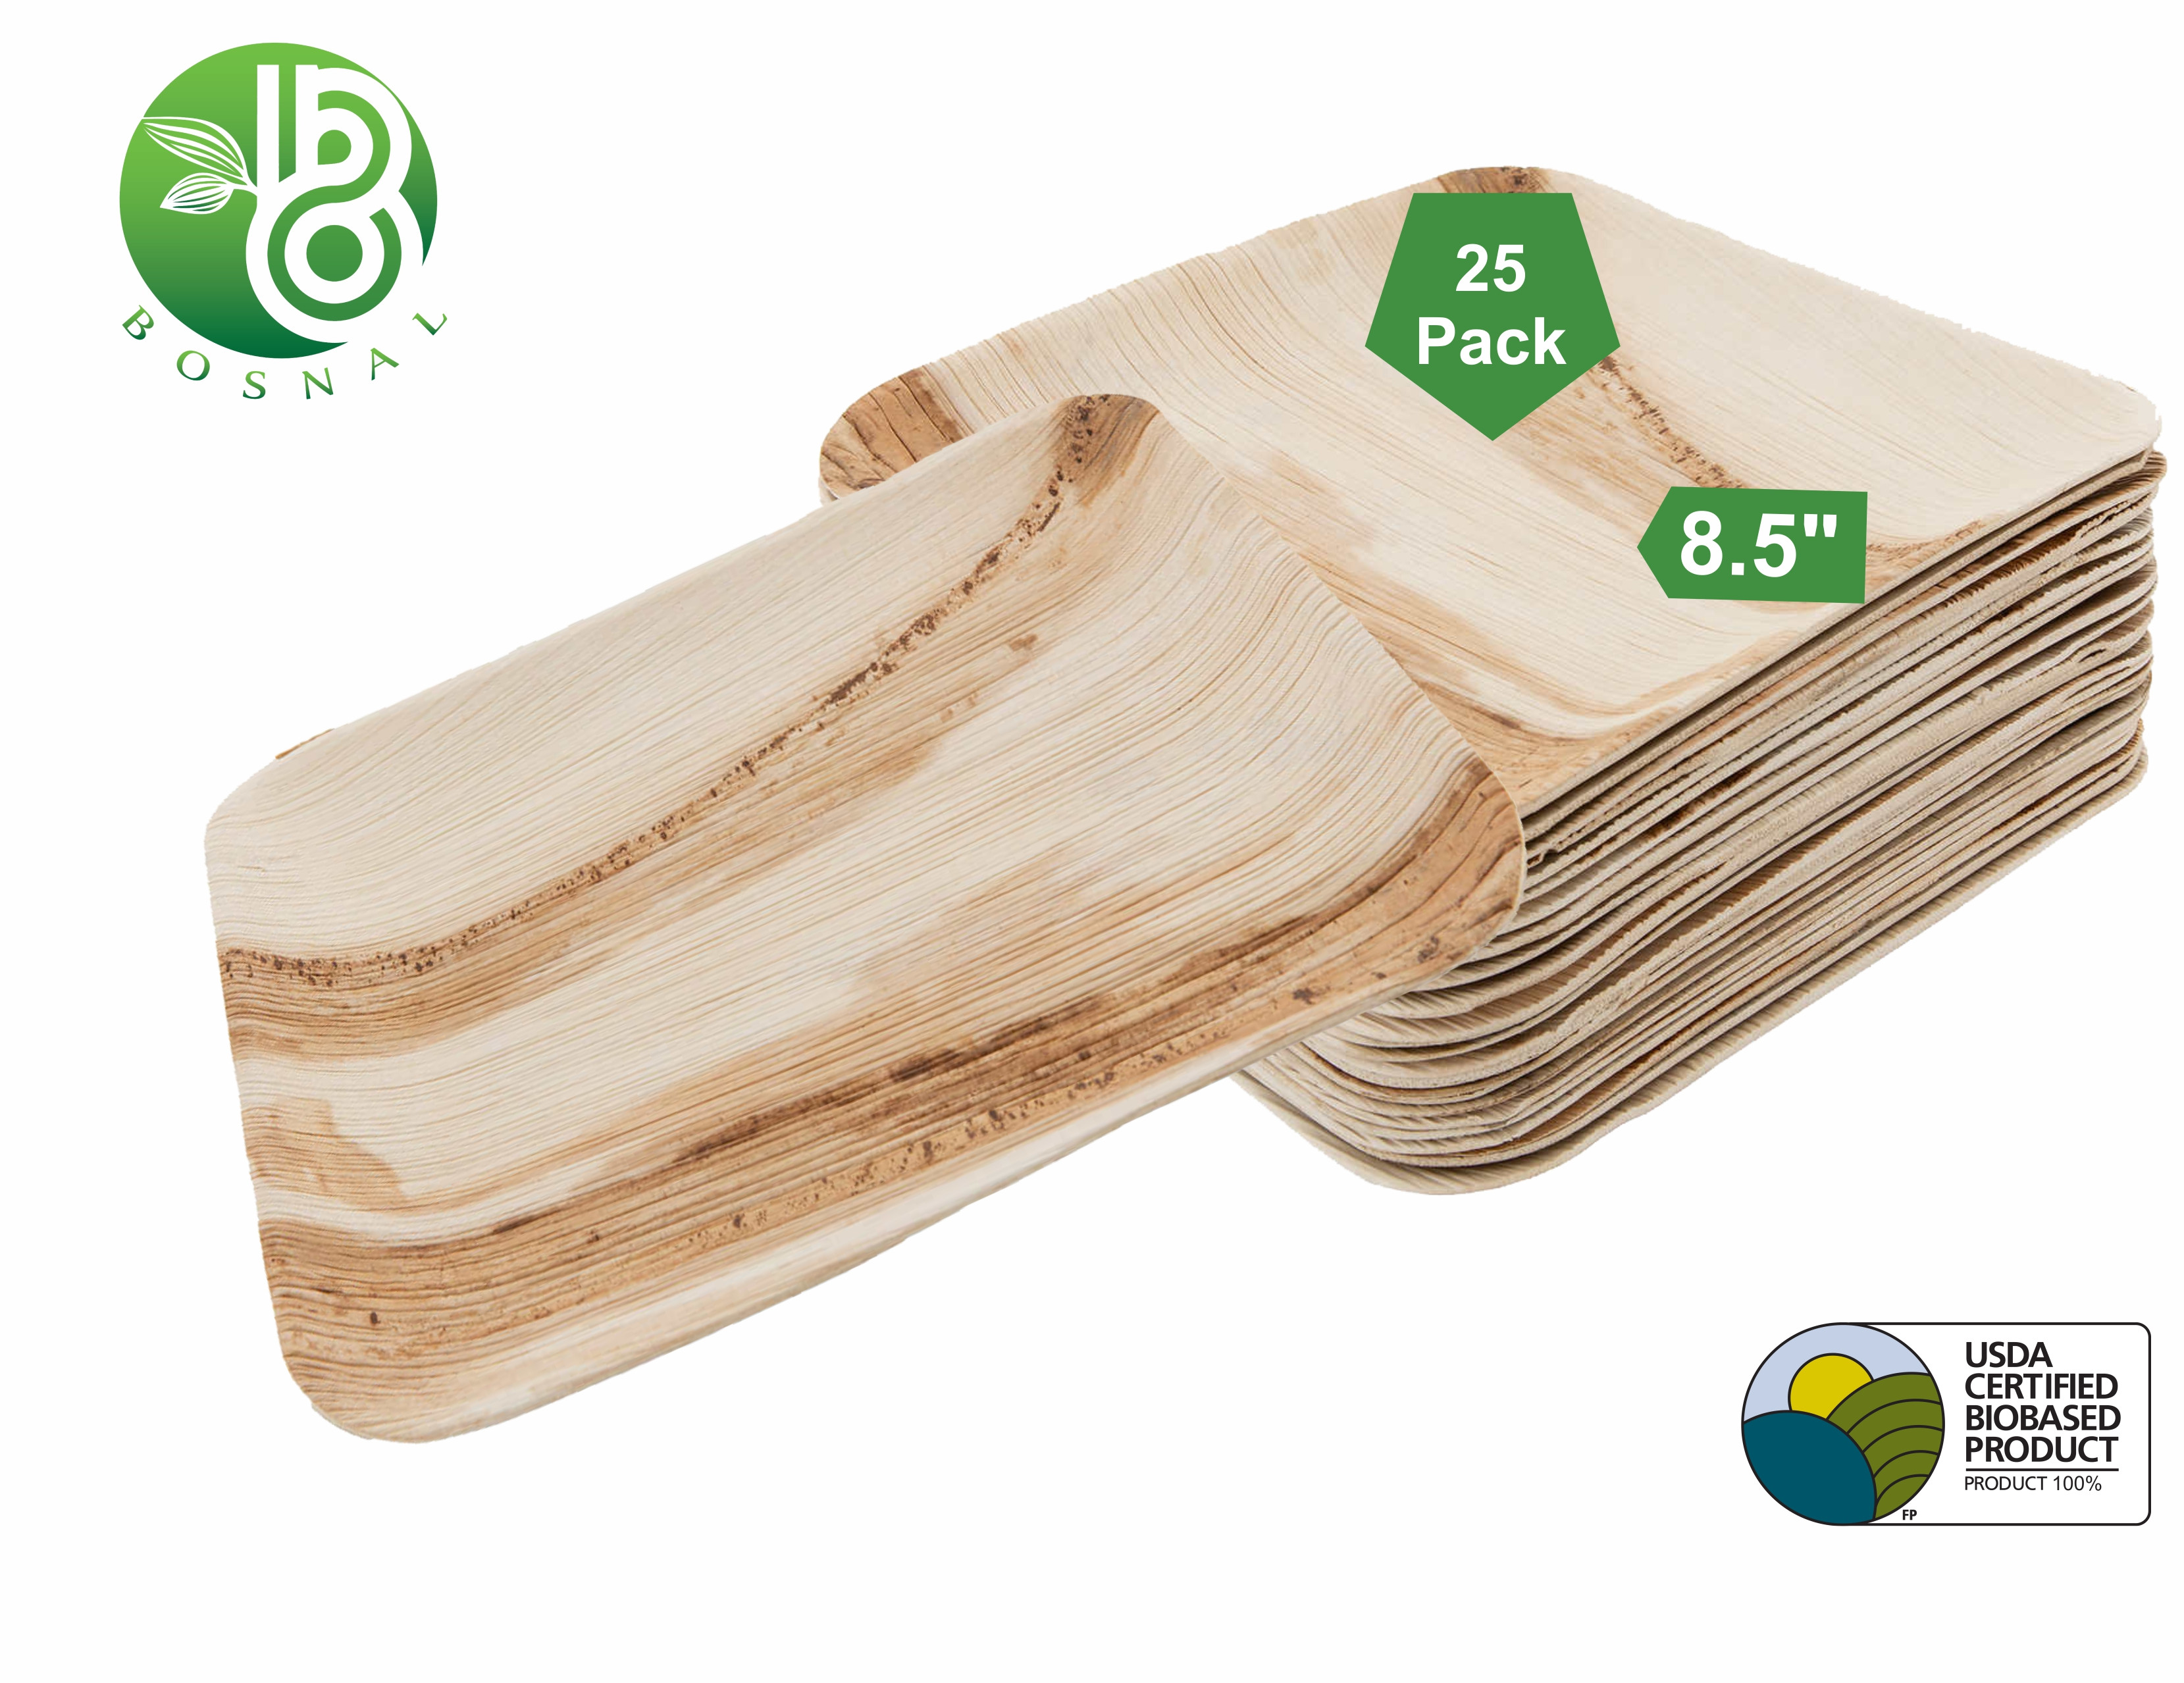 Bosnal 8.5 inch Square Palm Leaf Biodegradable Bamboo and Wood Style Plates, 25 Pcs